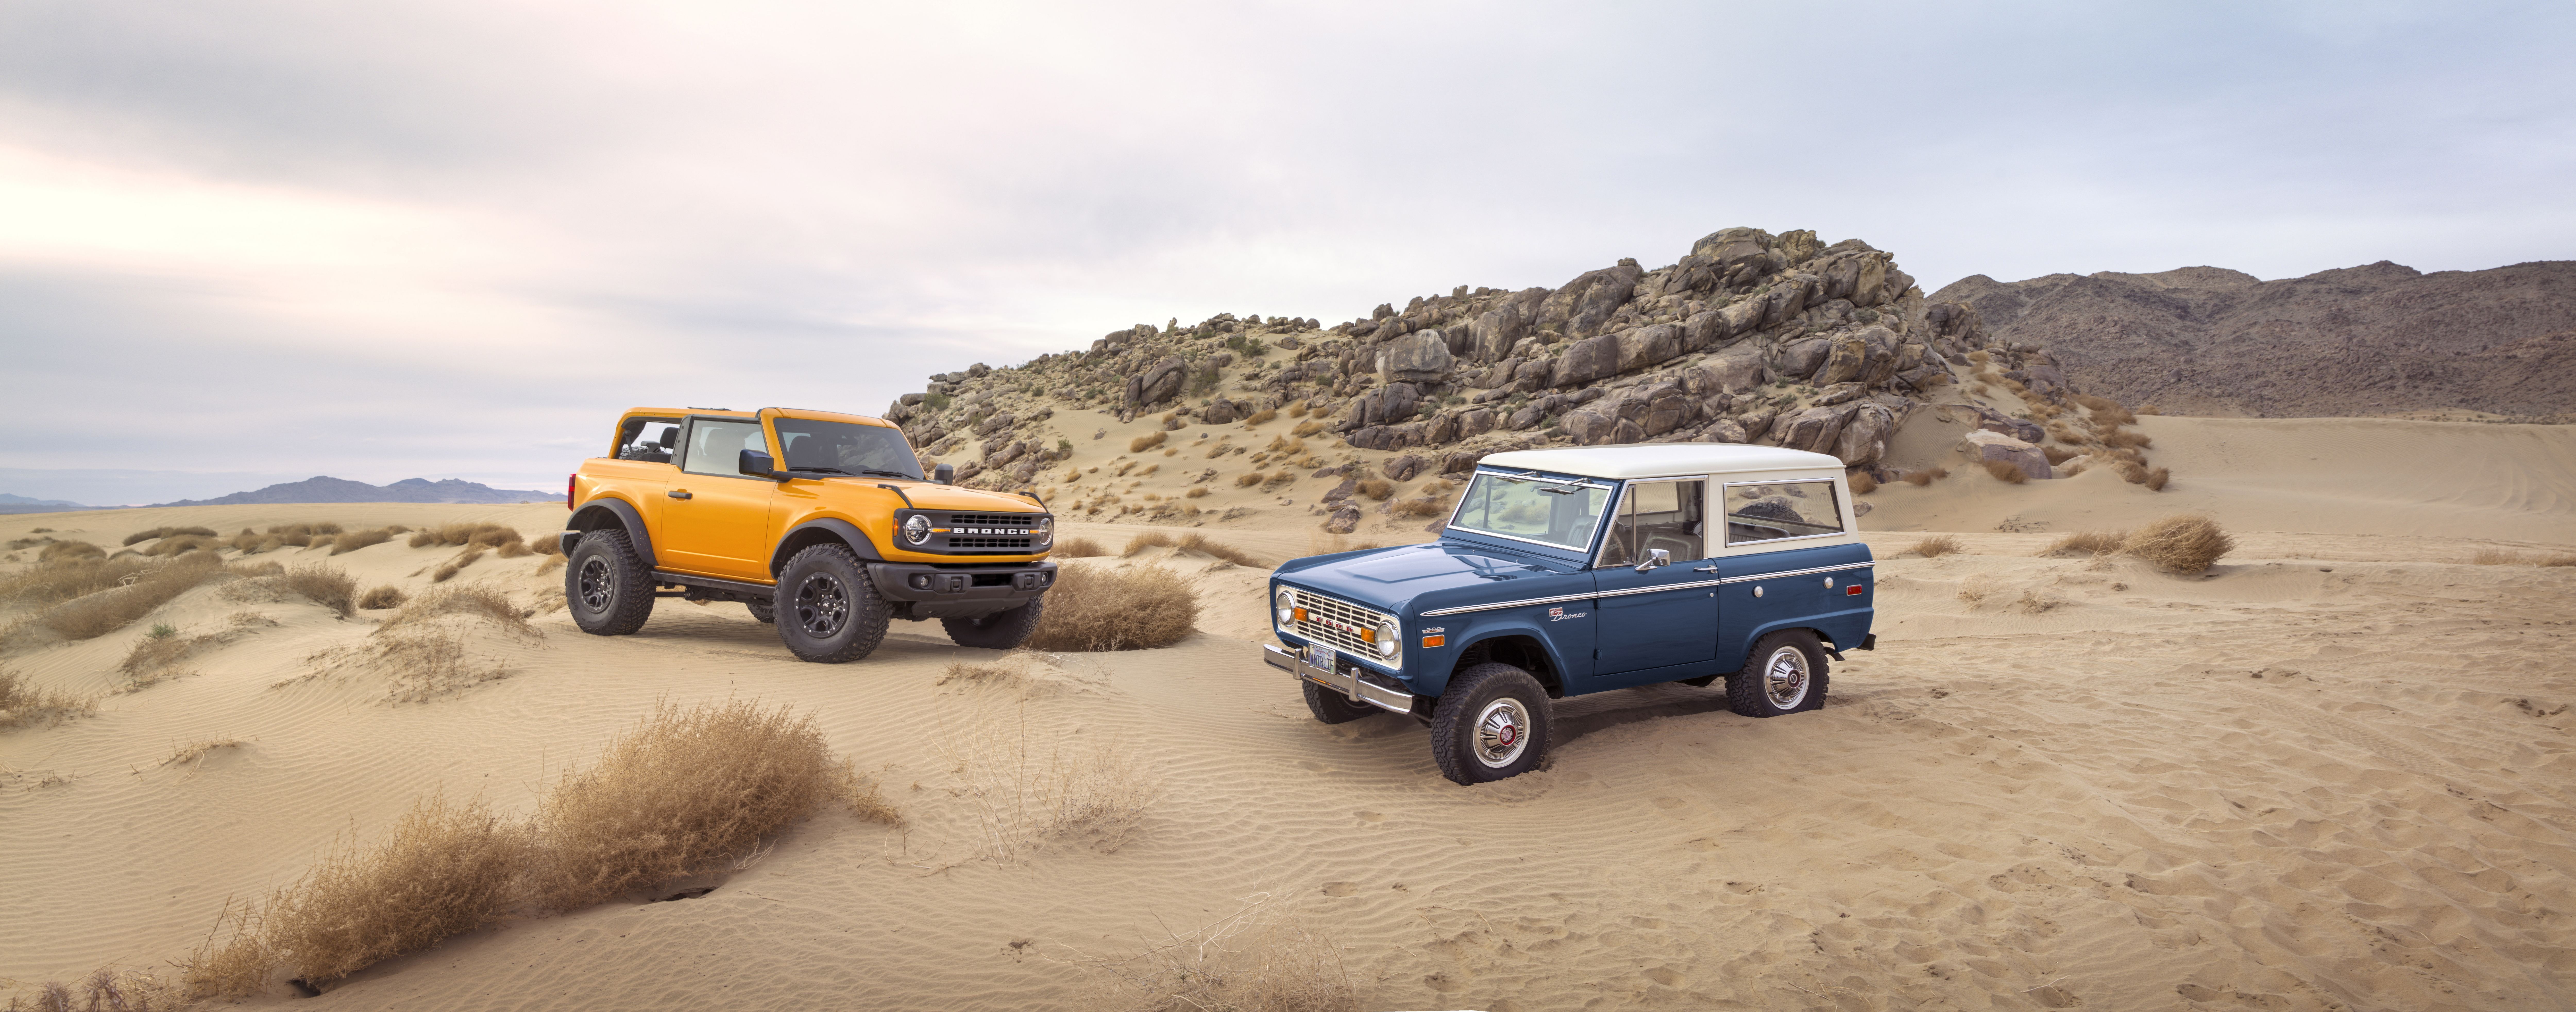 Sixth-generation Ford Bronco debuts – two EcoBoost petrols, removable panels and washable interior Image #1145173